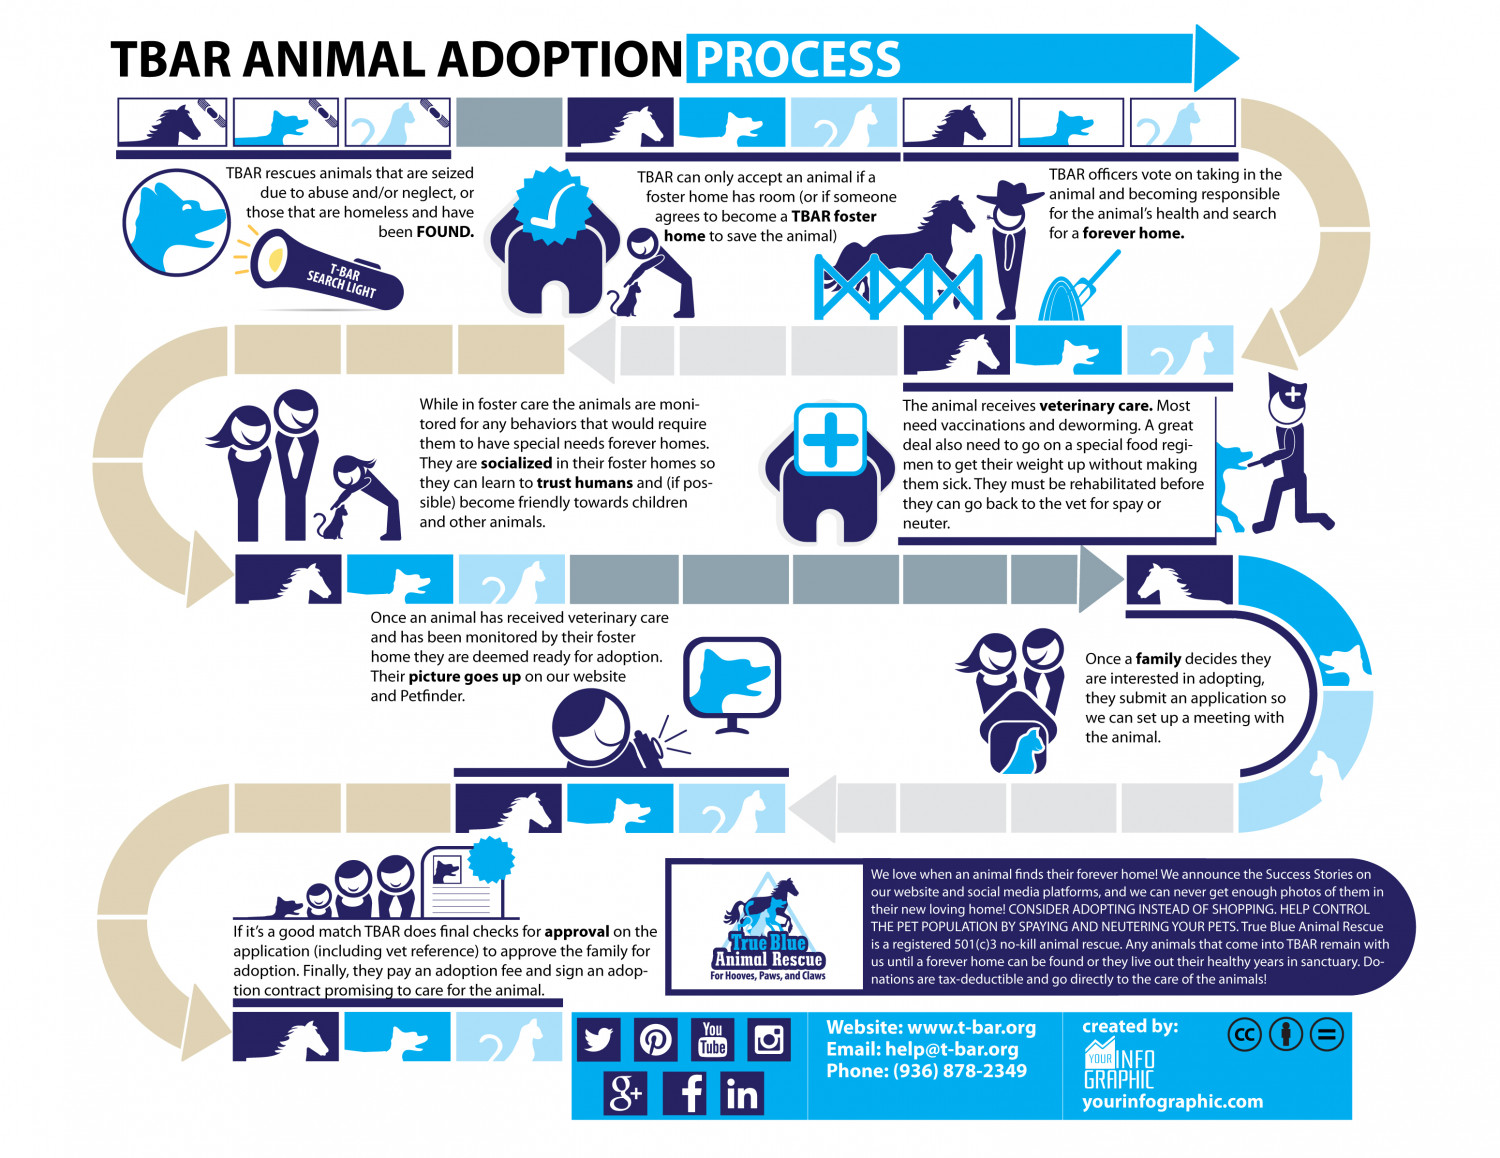 TBAR Animal Adoption Process Infographic